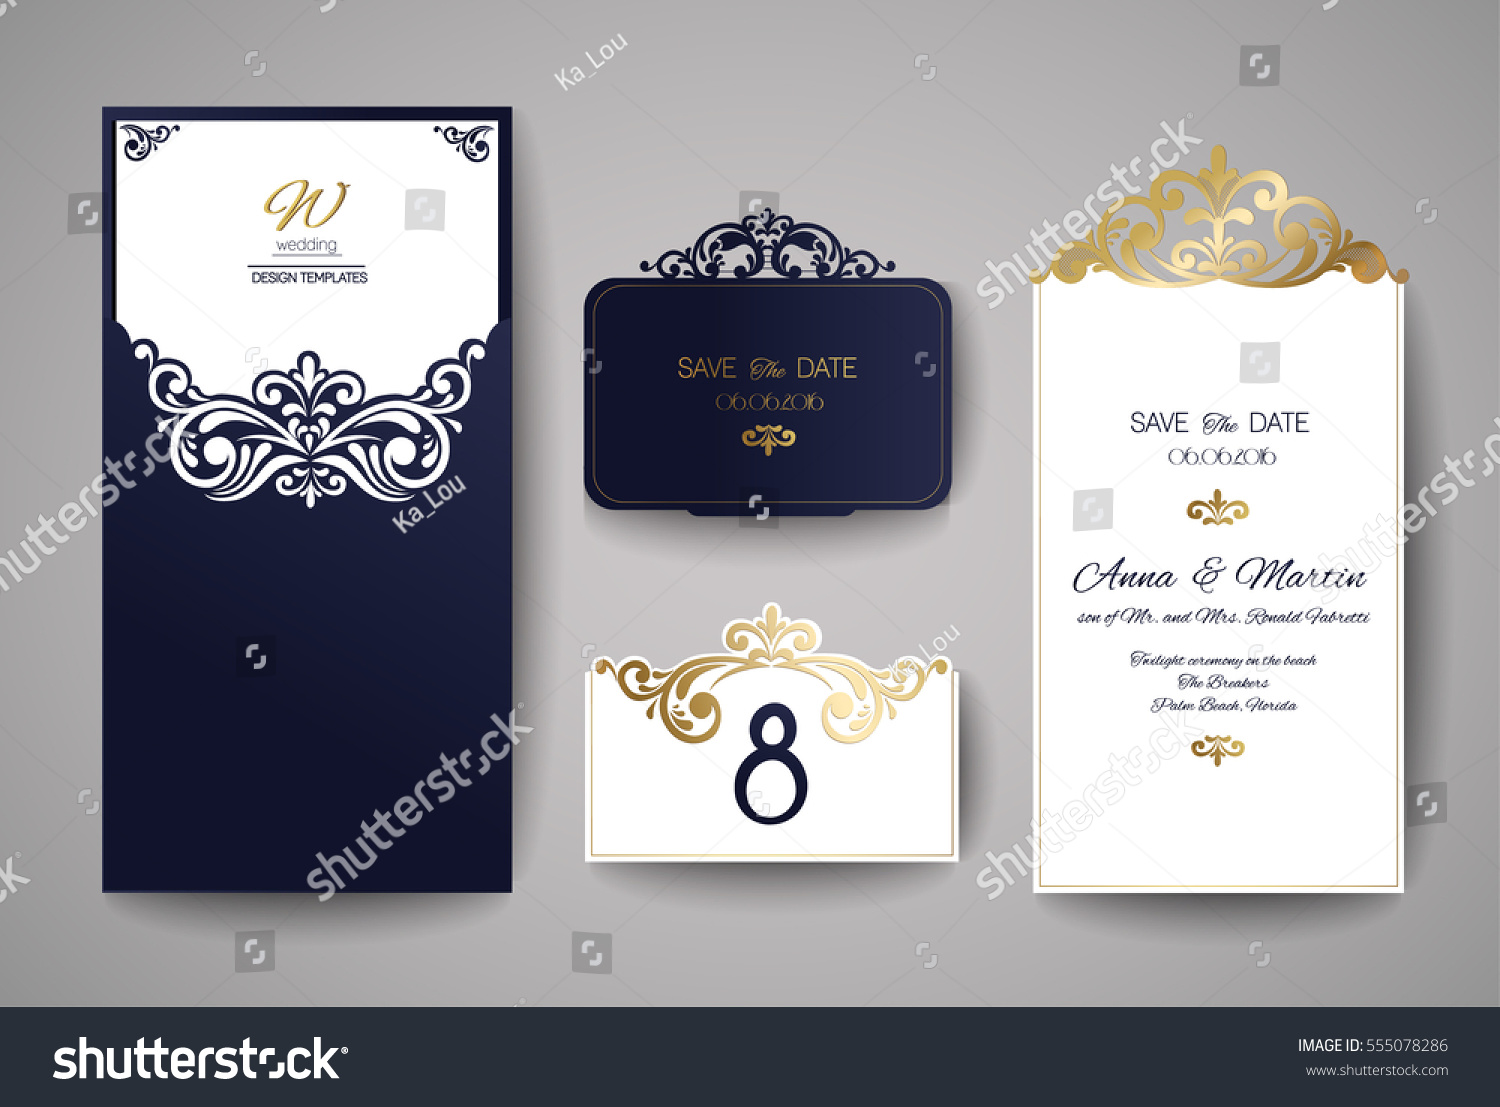 wedding invitation electronic cards - 28 images - wedding invitation ...